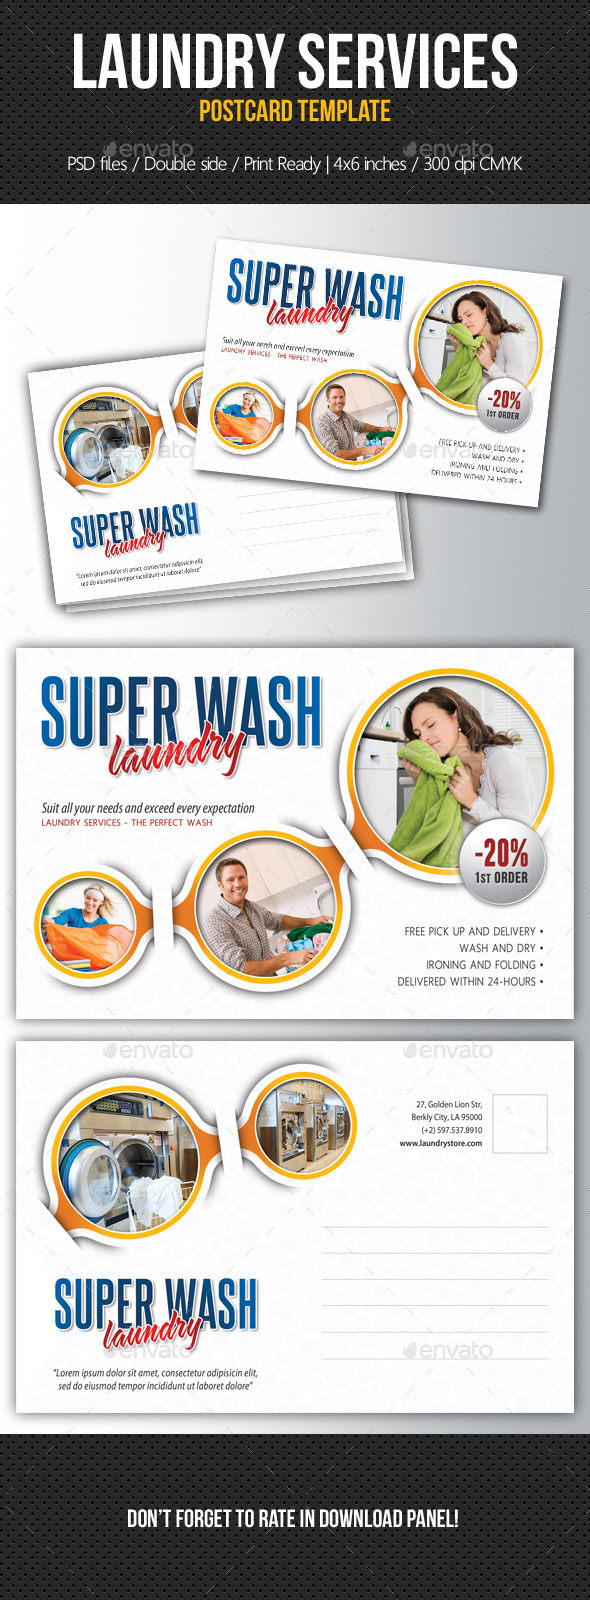 Laundry Services Postcard Template V02